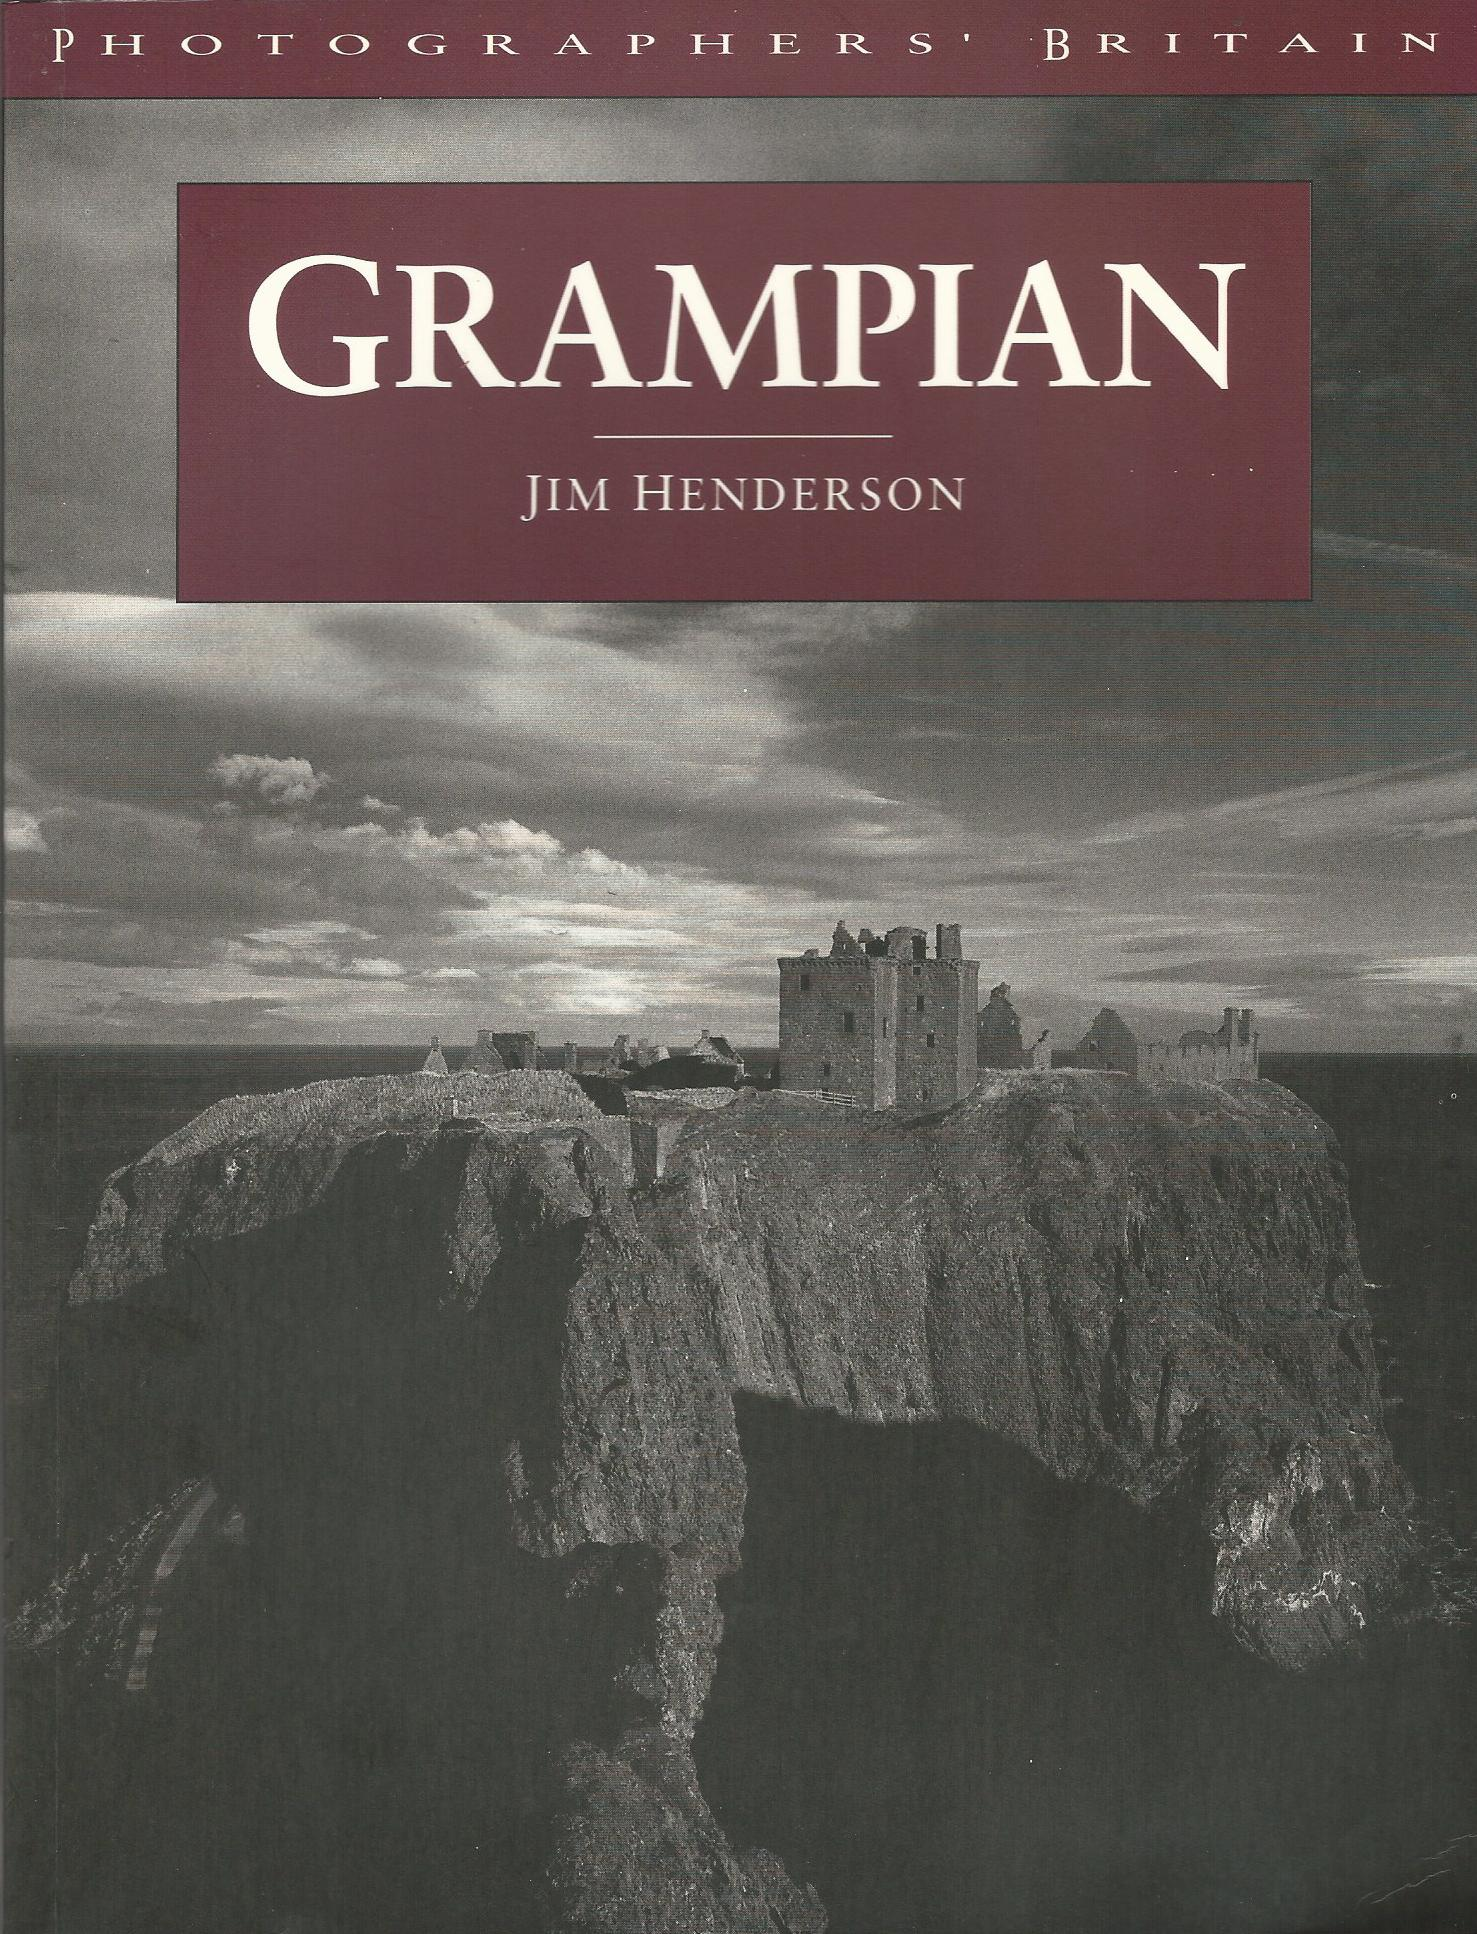 Image for Photographers' Britain: Grampian